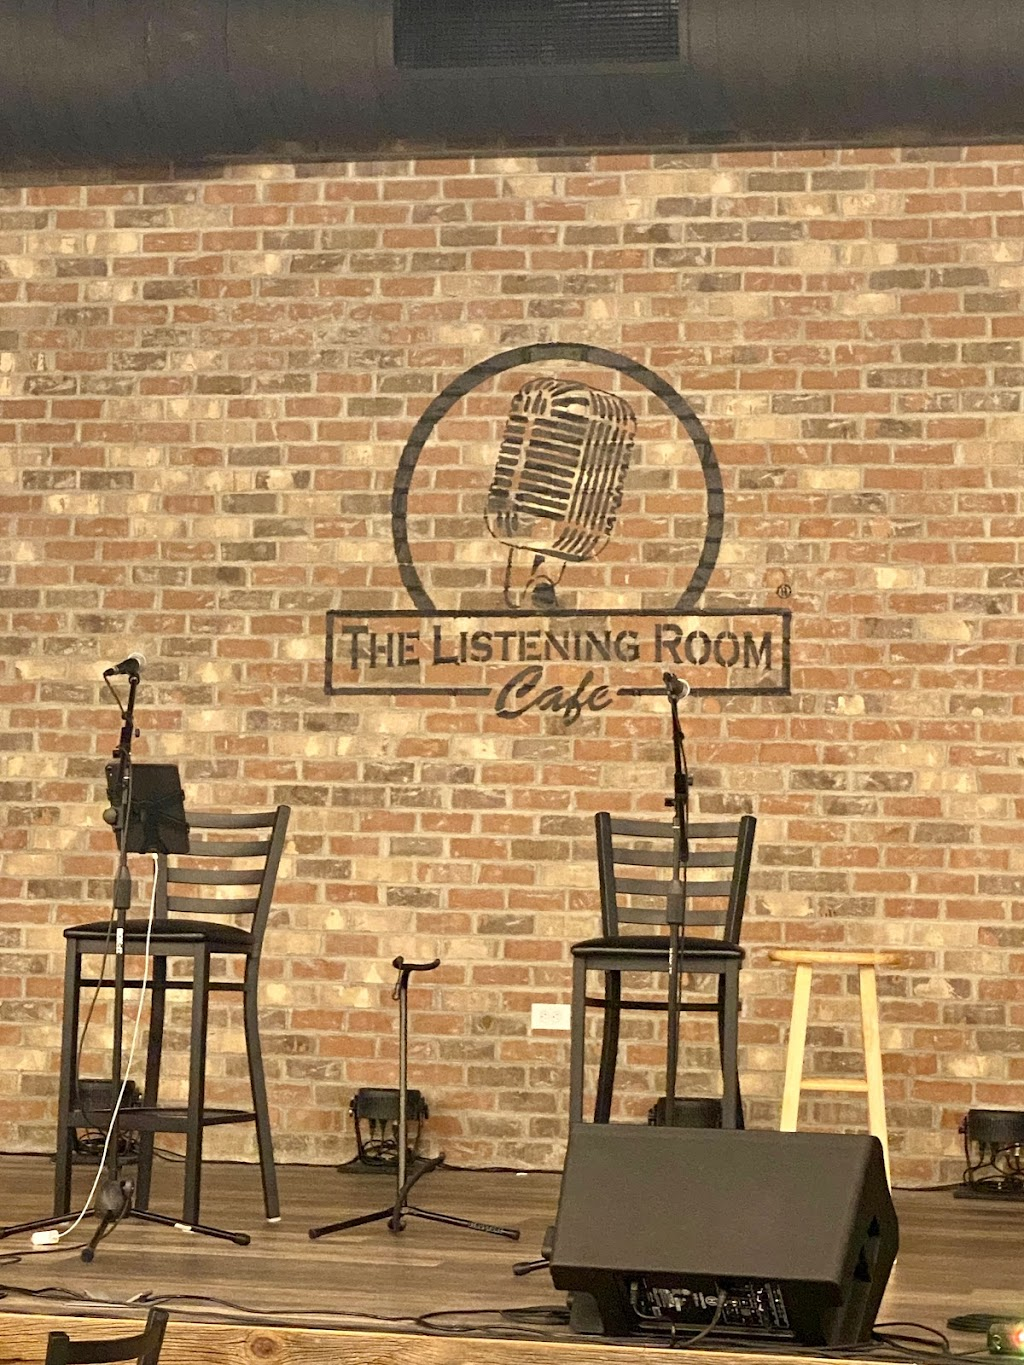 Listening Room Cafe - Pigeon Forge | cafe | 2703 Teaster Ln, Pigeon Forge, TN 37863, USA | 8653652225 OR +1 865-365-2225